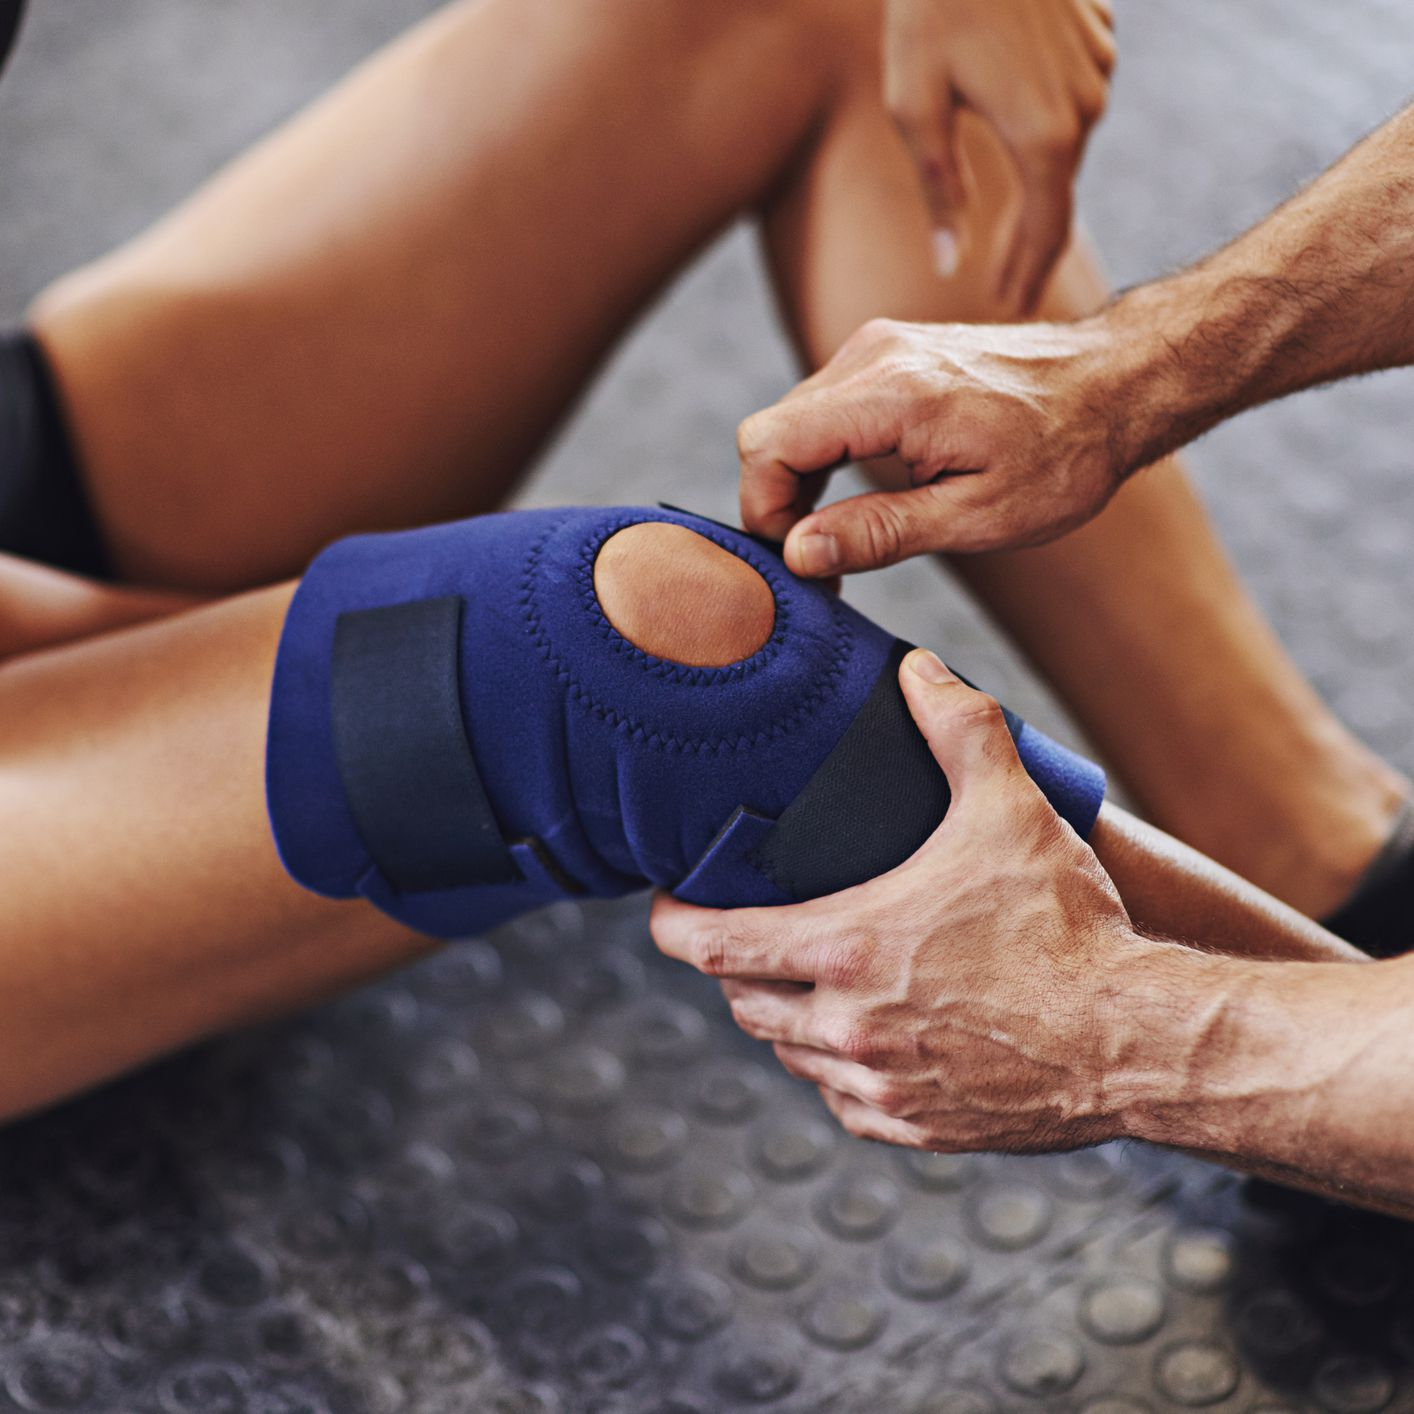 An Overview of Sports Medicine